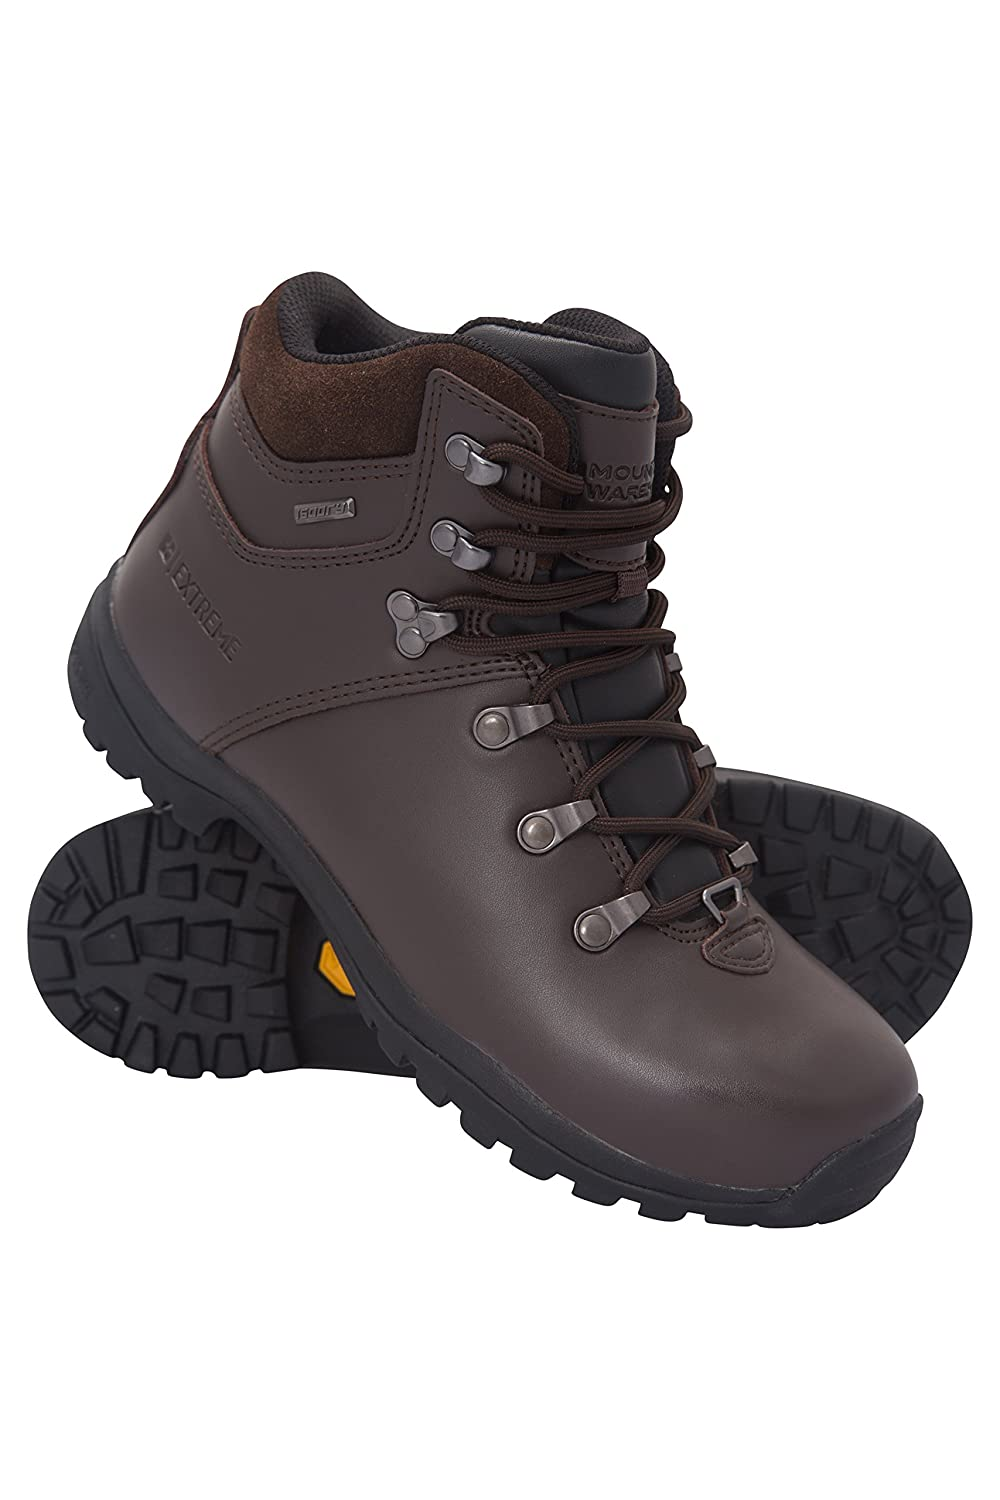 Mountain Warehouse Breacon Women's Boots - Vibram Ladies Hiking Boots